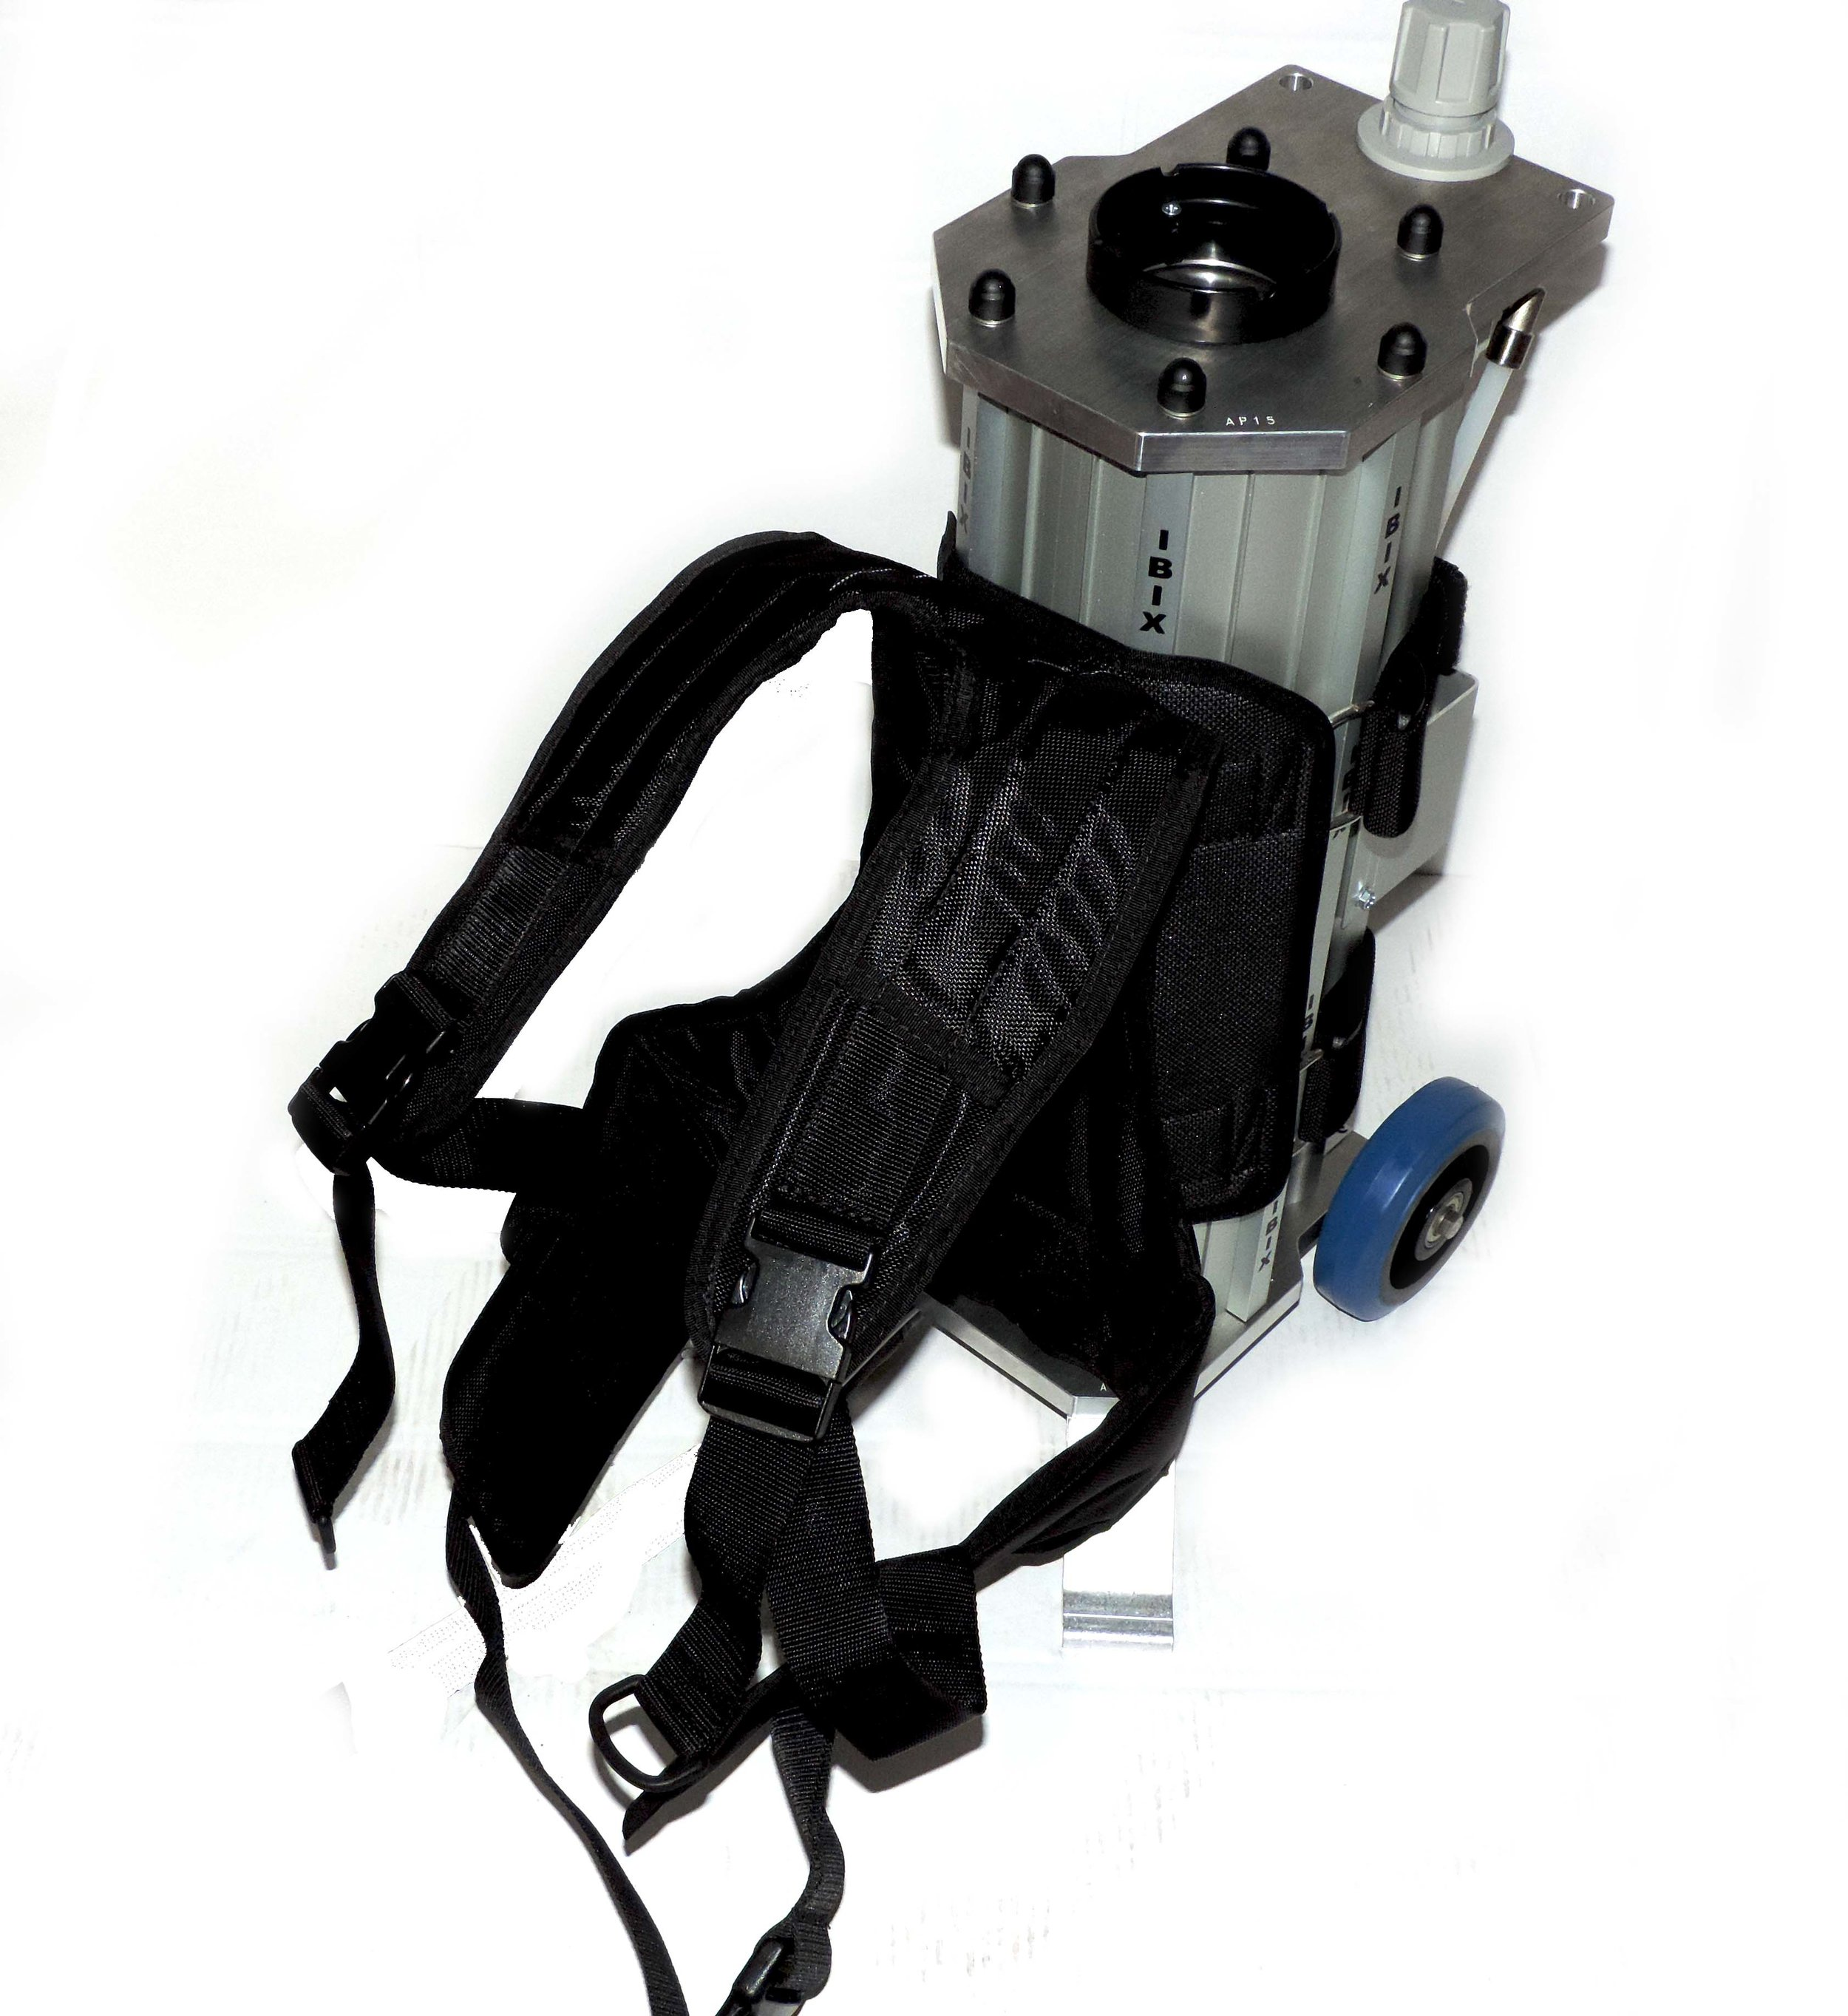 BACKPACK - The backpack accessory allows for the TRILOGY NANO and TRILOGY 9 to be attached to the operators back. This is ideal for jobs on scaffolding or tough to reach places.